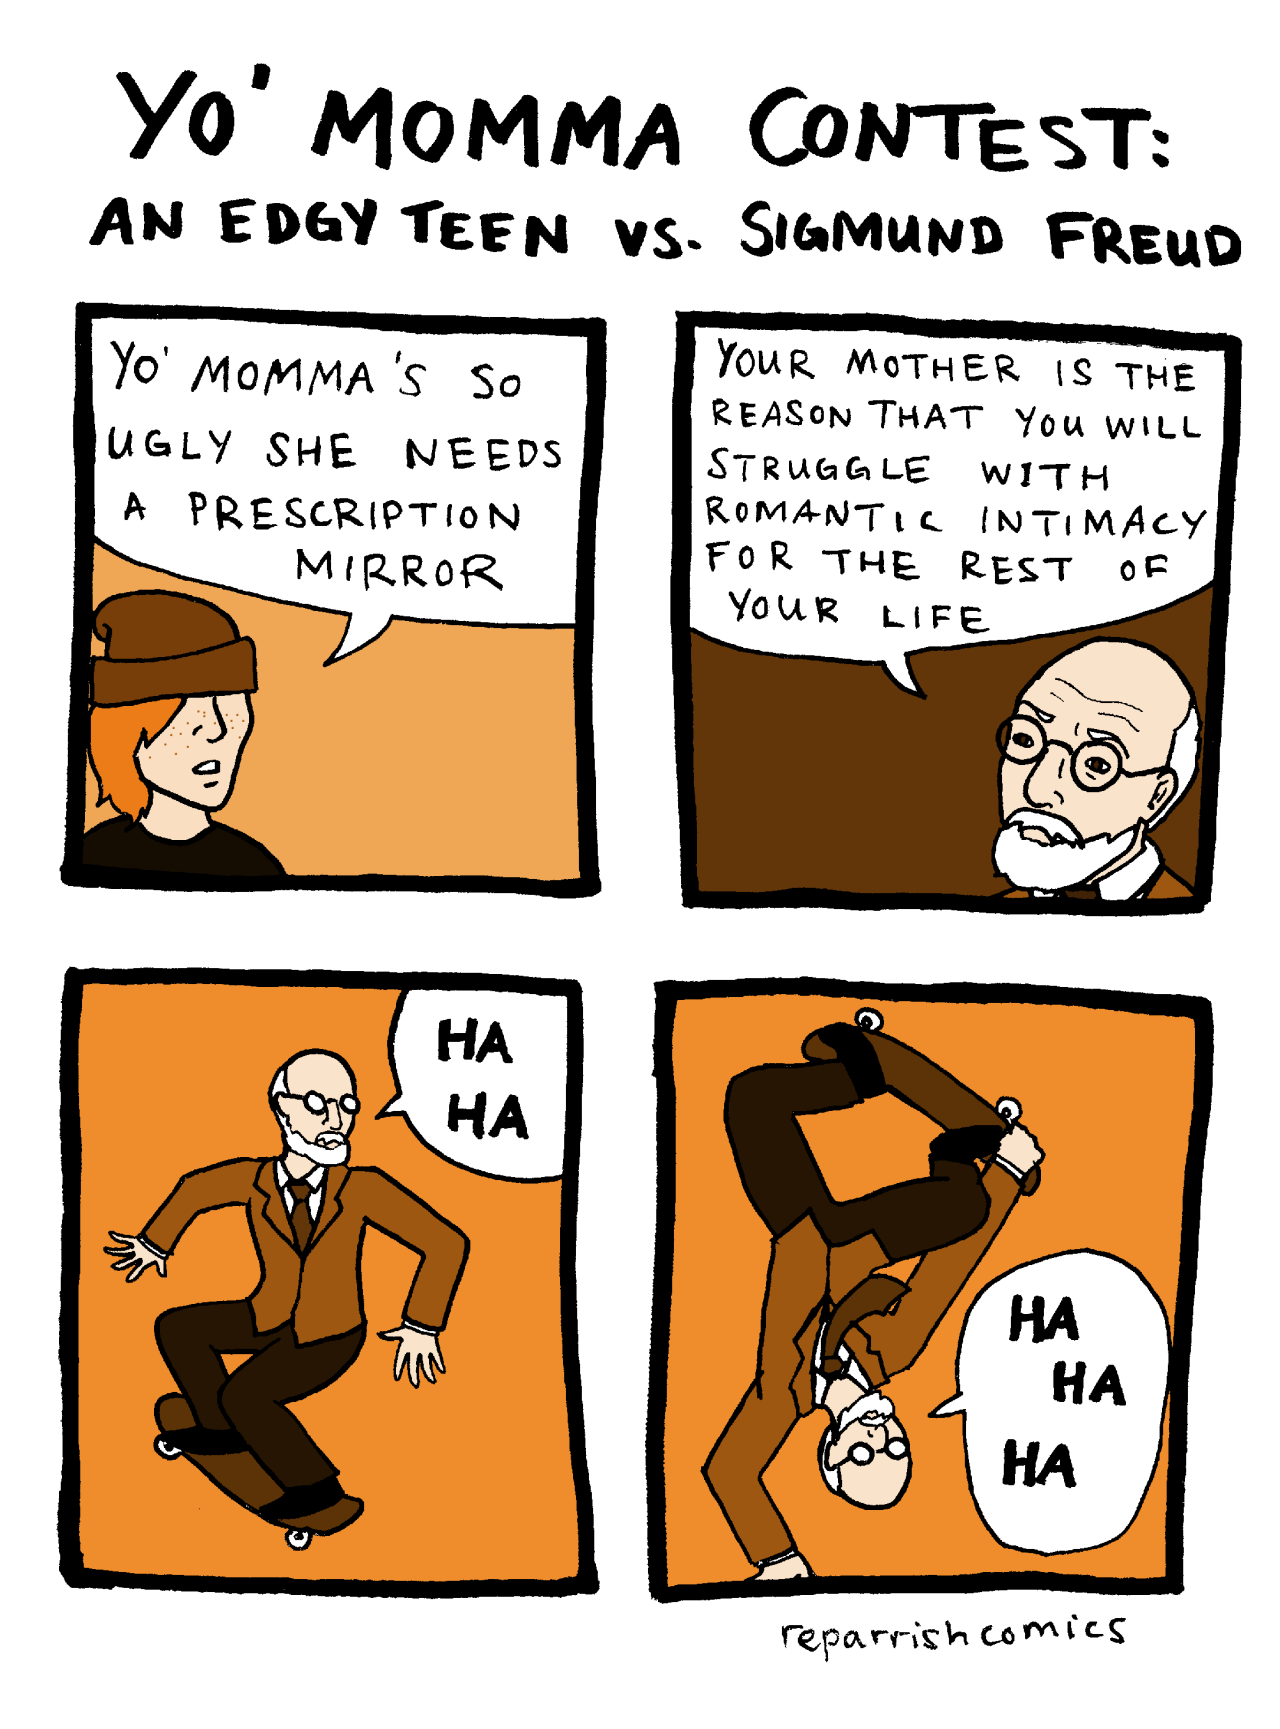 freud essay humor Looking for sigmund freud's essay titled humor from 1927.